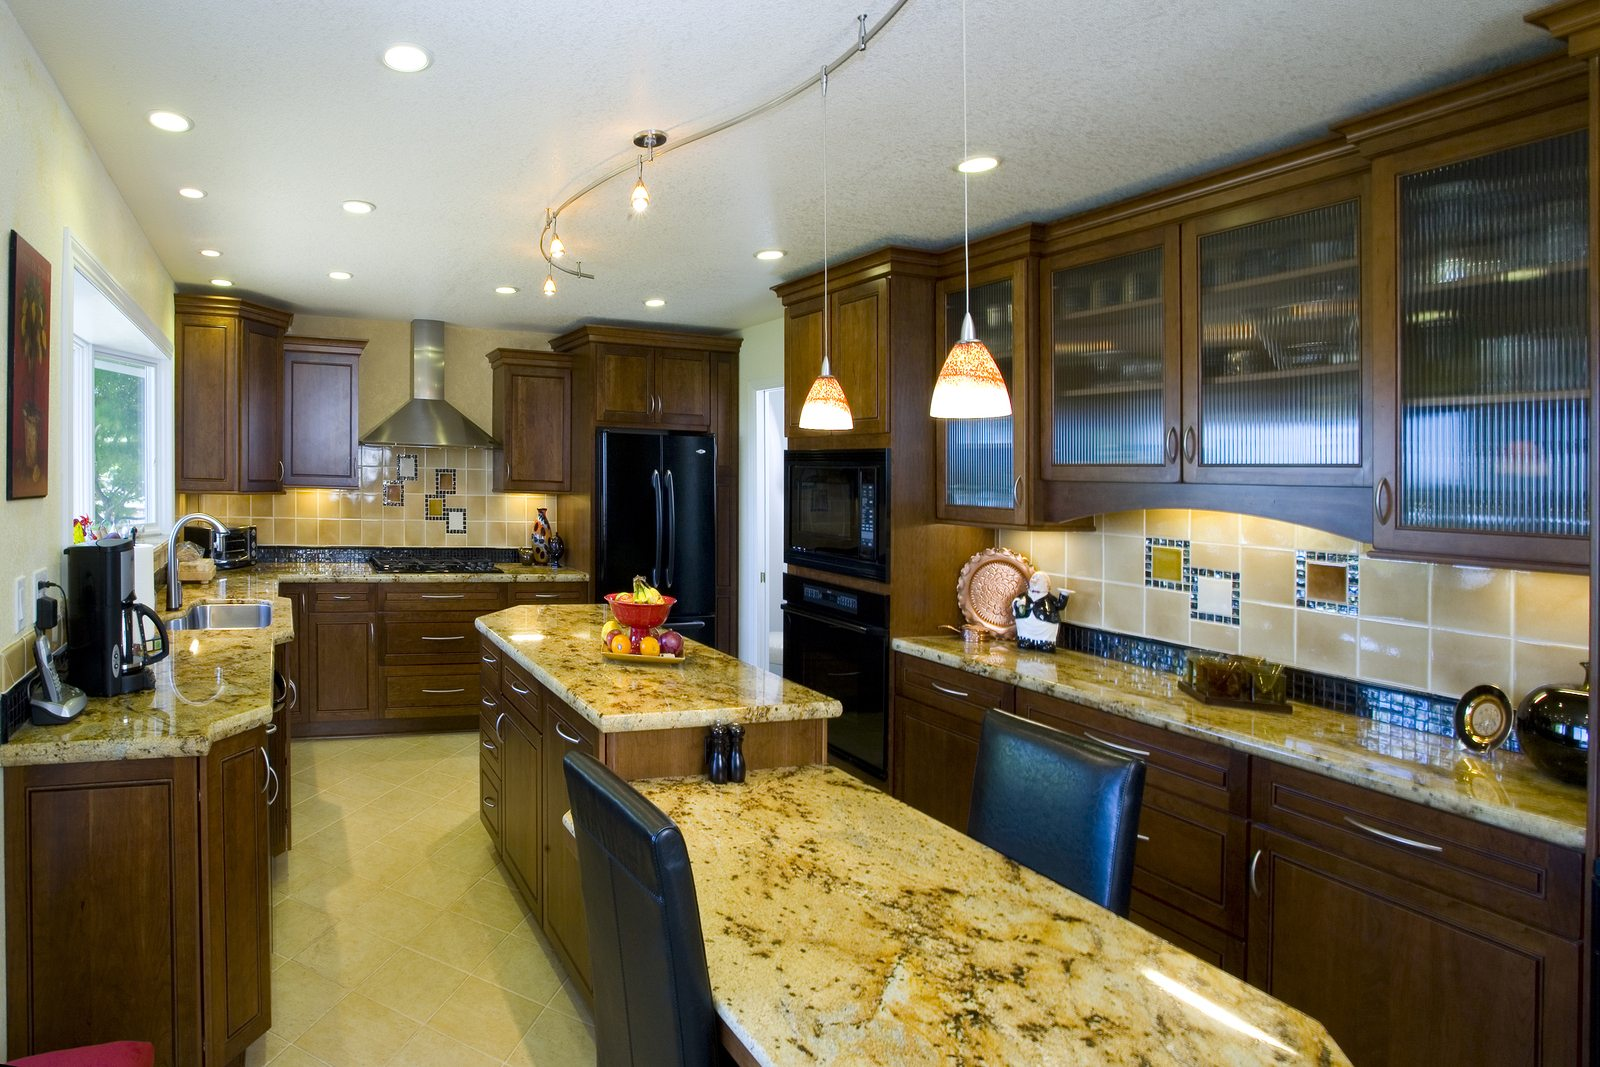 Remodeled kitchen with track lighting and rail lighting